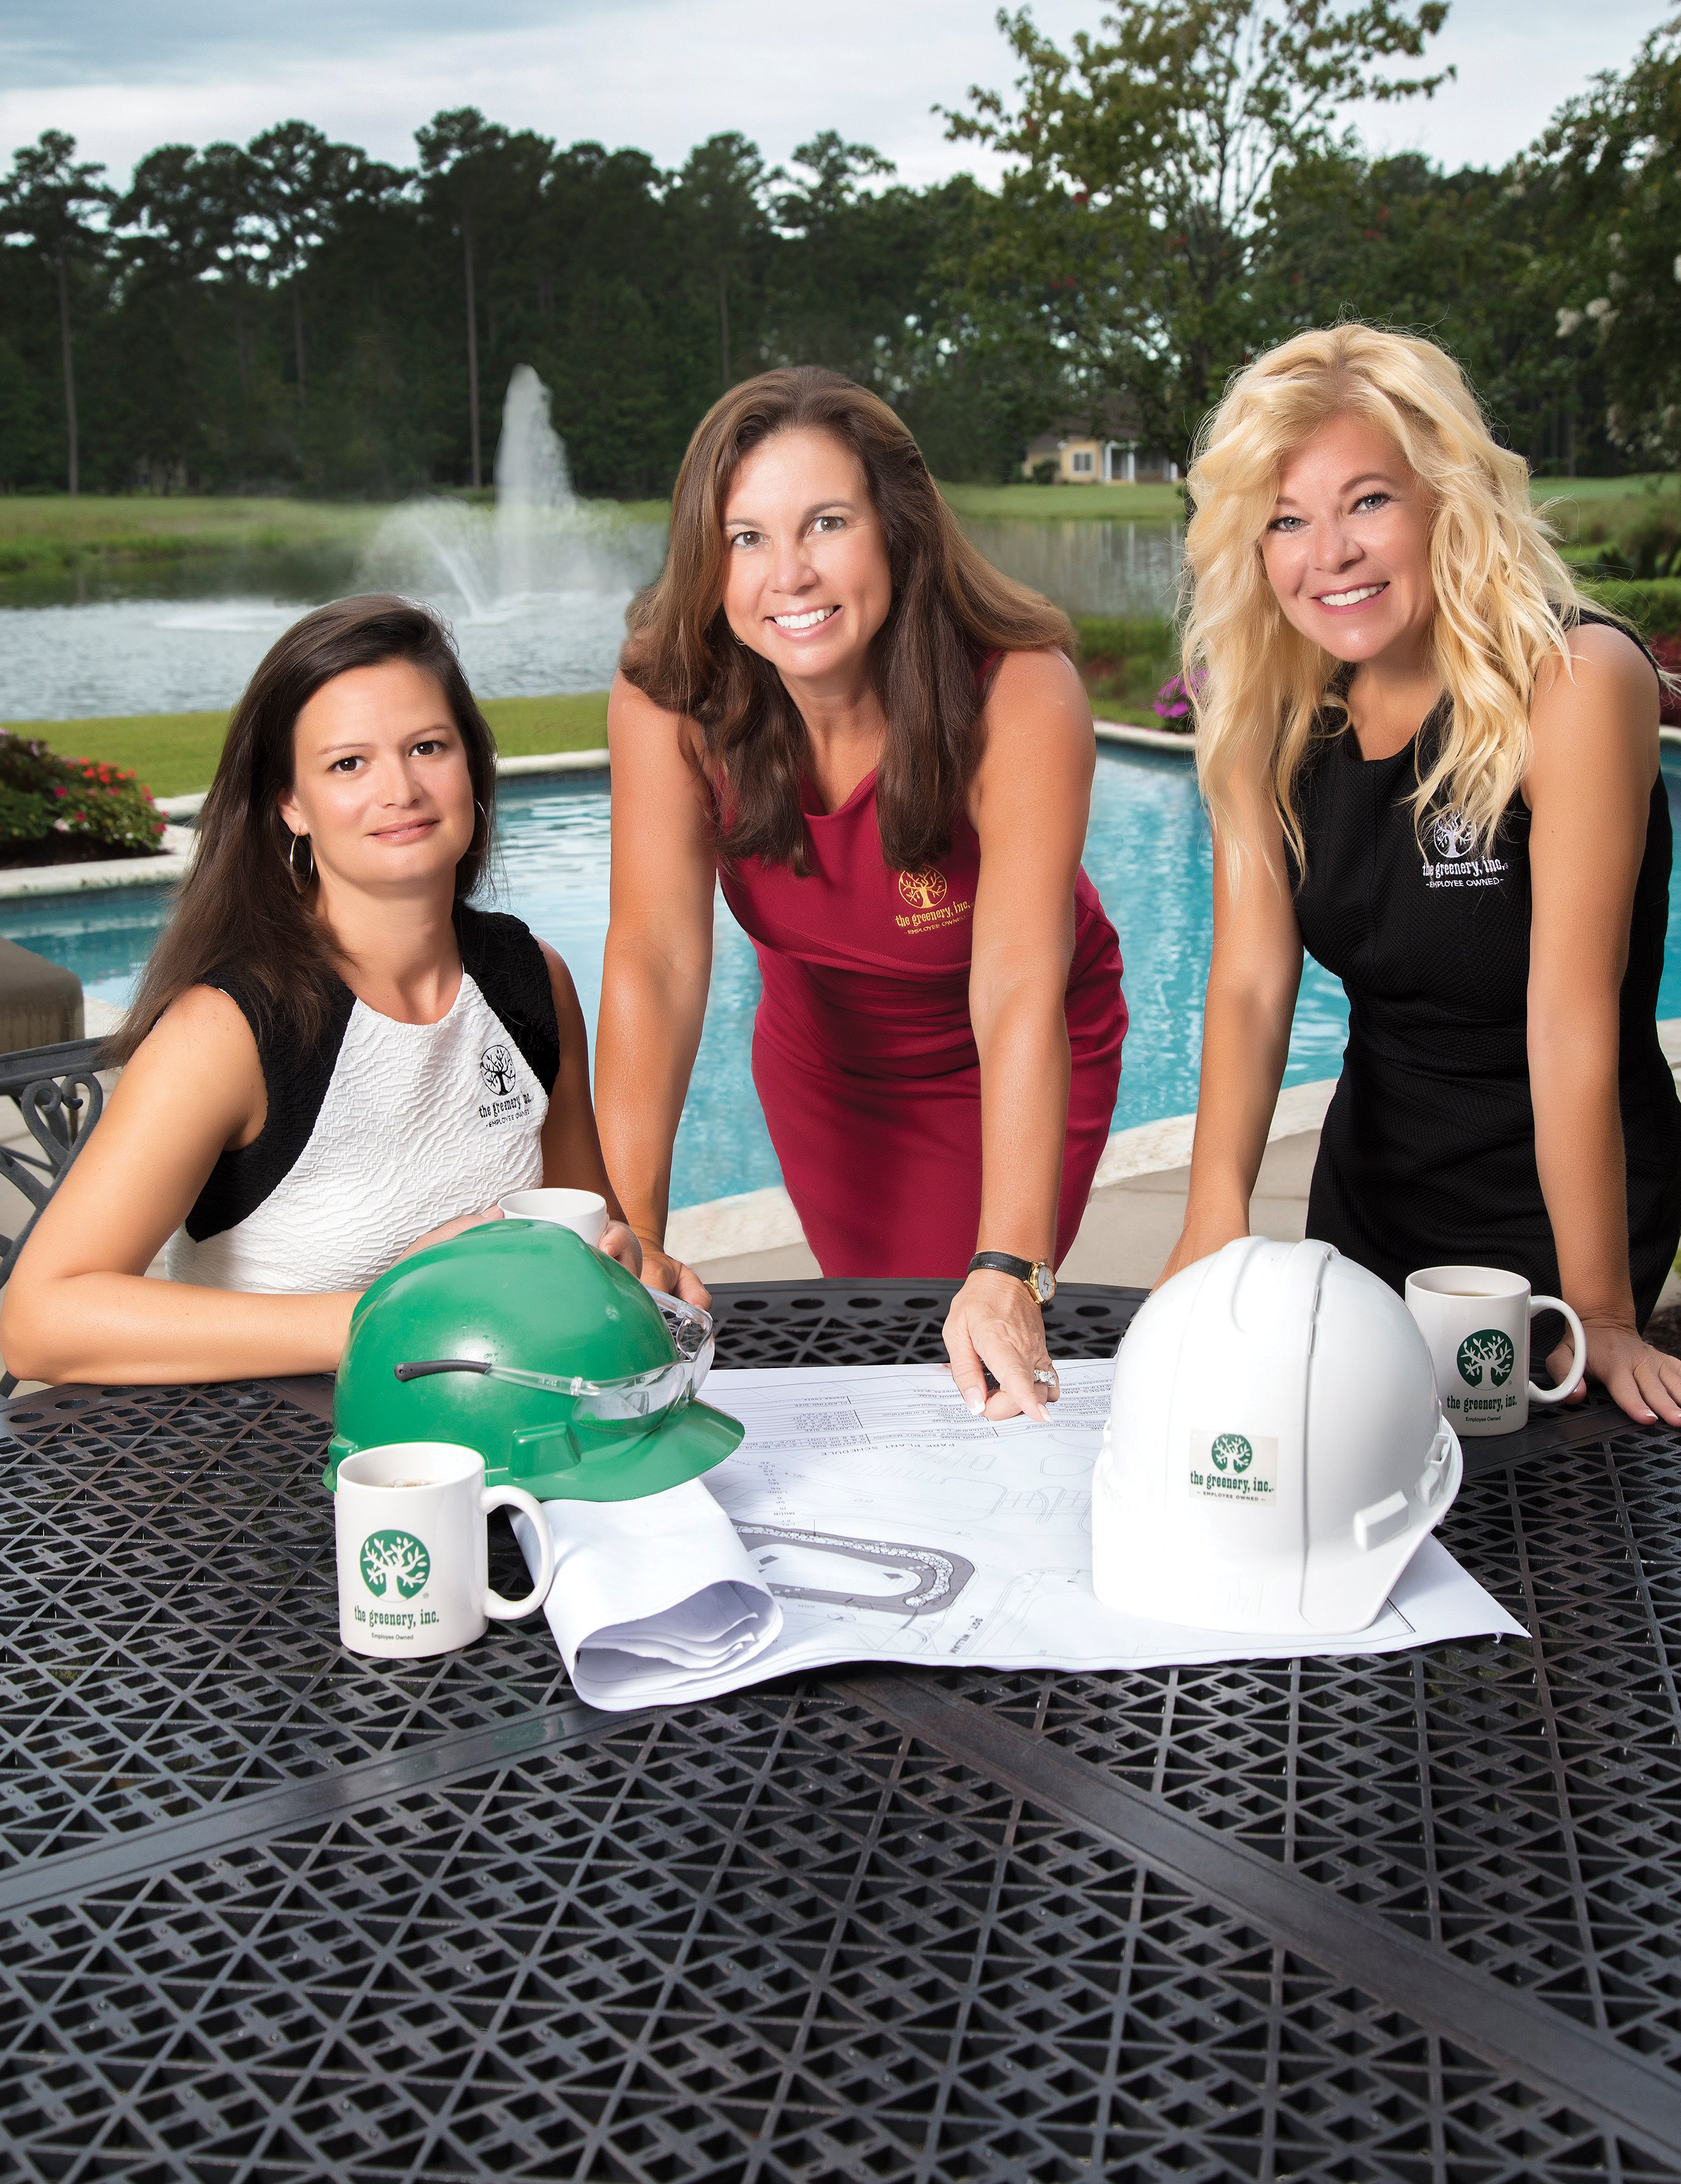 Business Development Team - Melissa Brophy, Janet Davoli, Melissa Brock